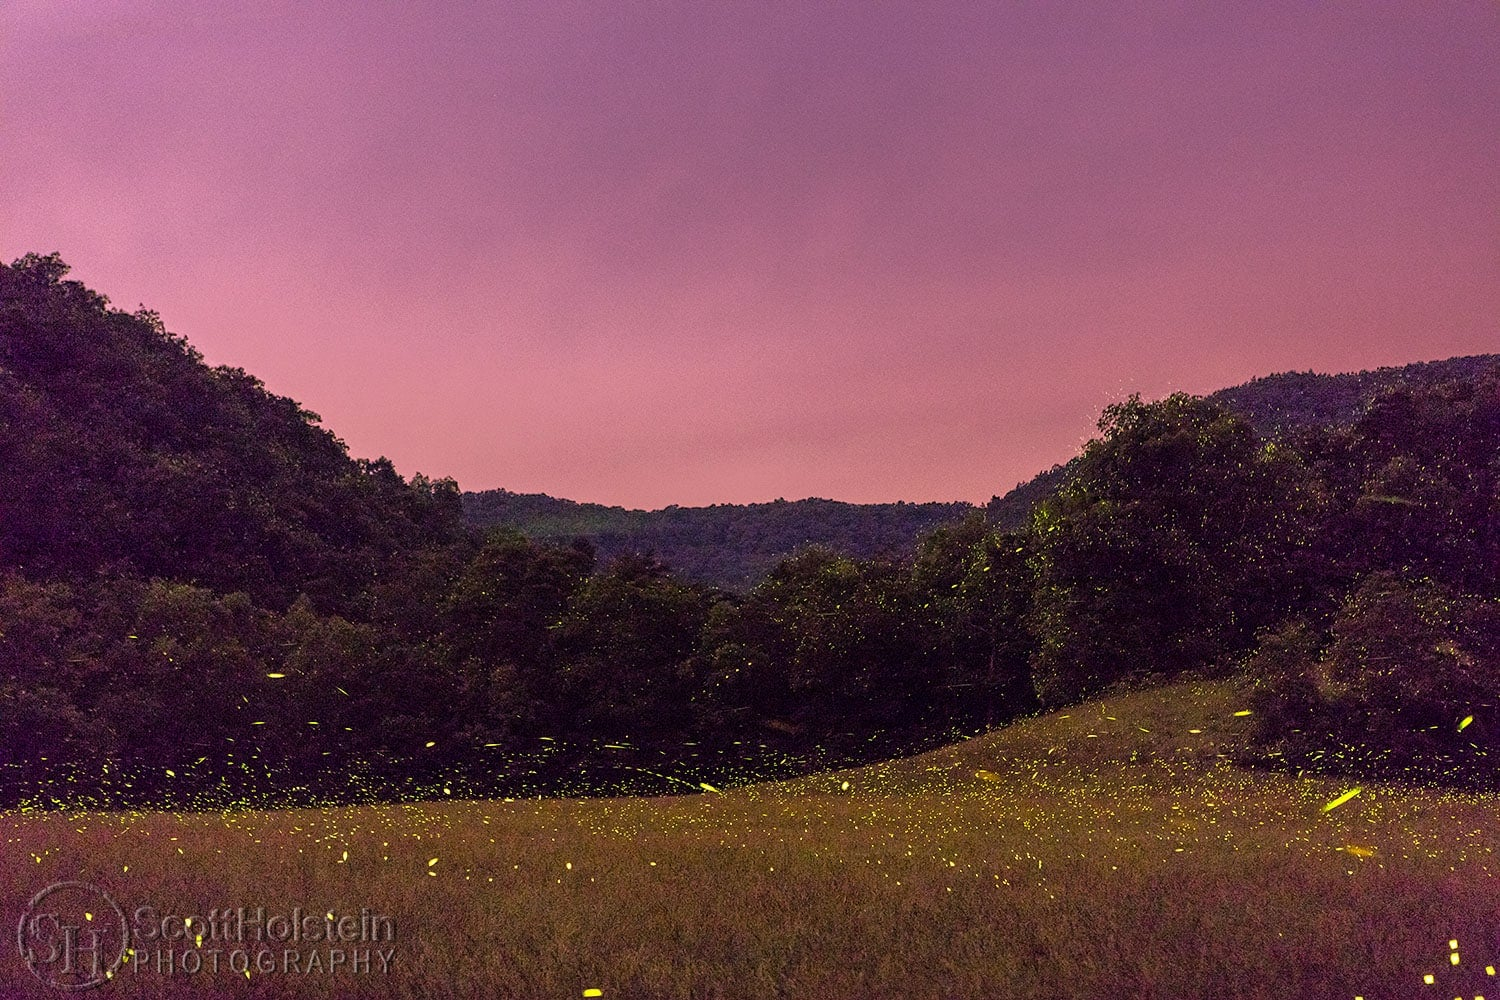 Fireflies in the mountains at sunset.